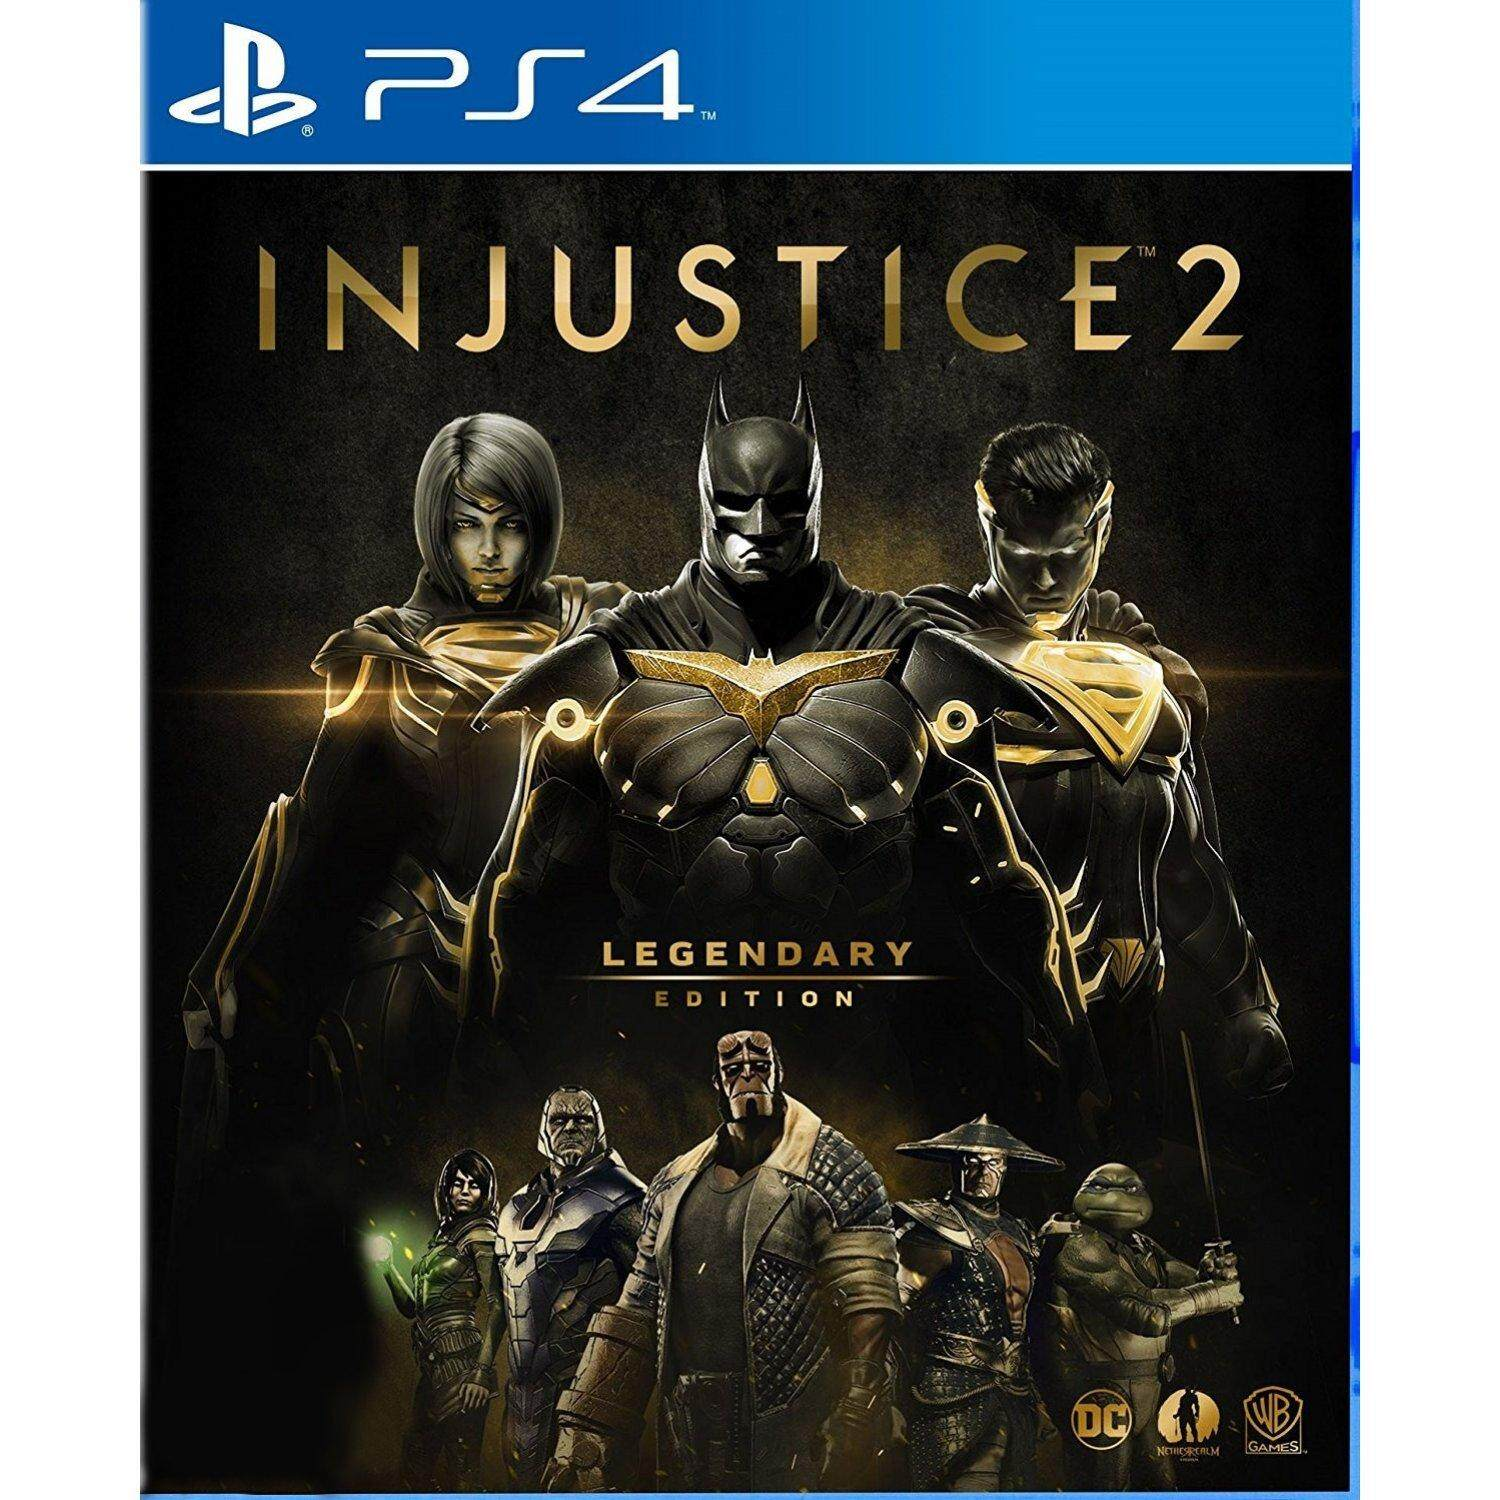 PS4 Injustice 2 Legendary Edition ( Zone 3 / Asia )( English )